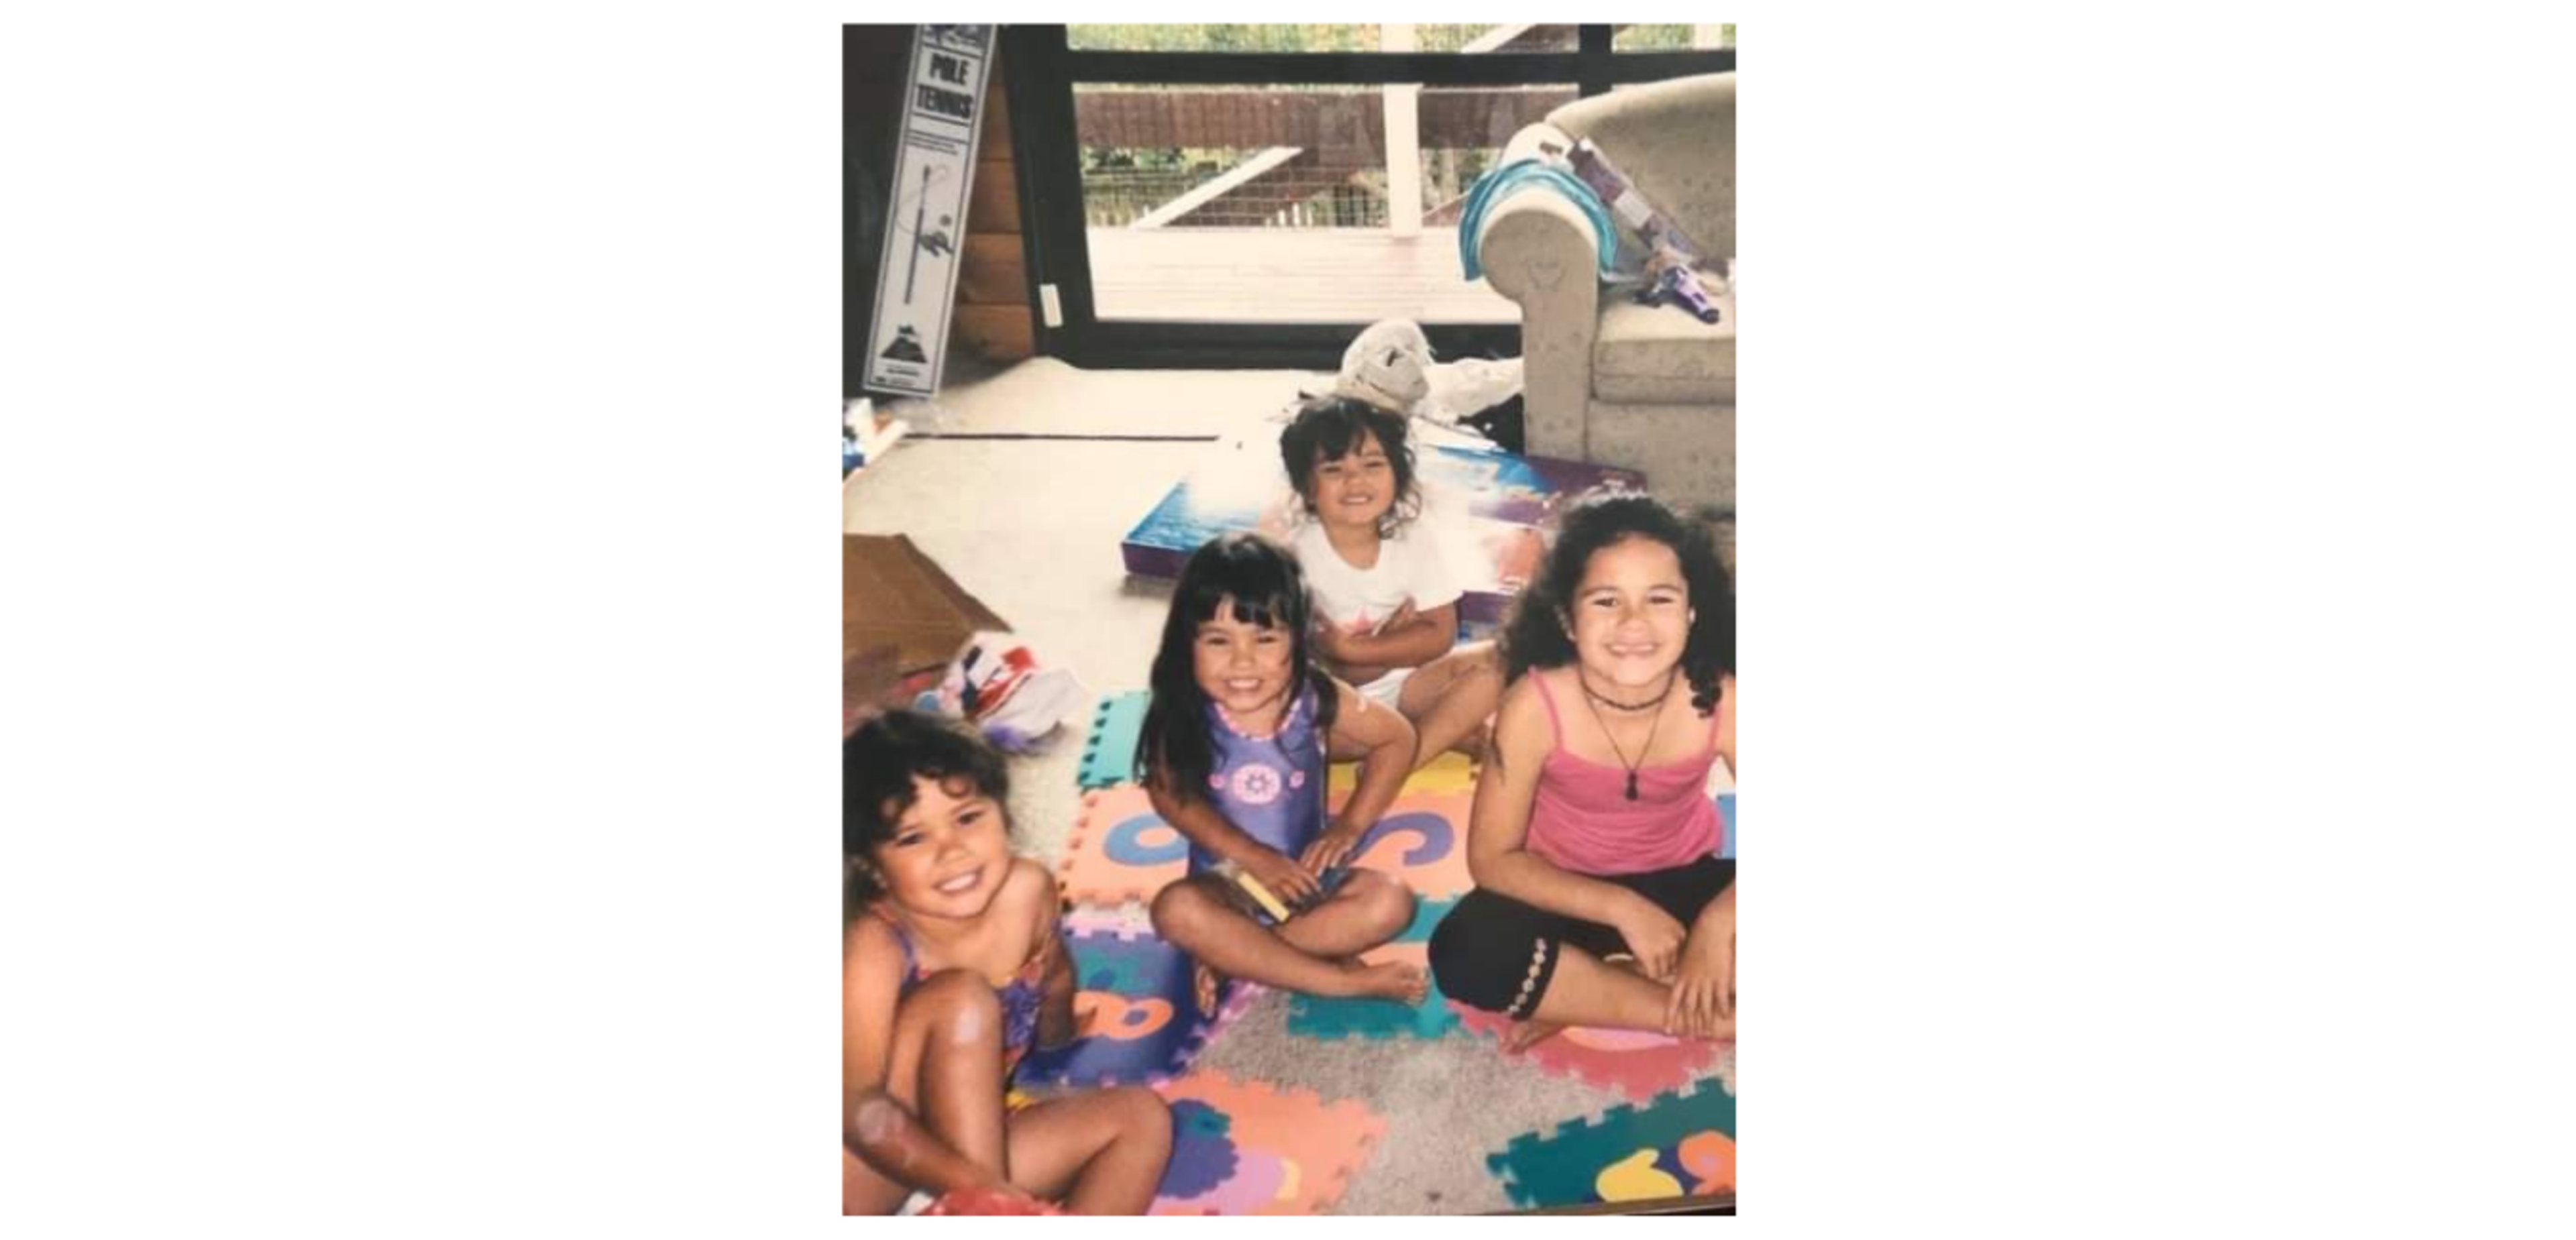 A family photo of Paige Tapara with her siblings.